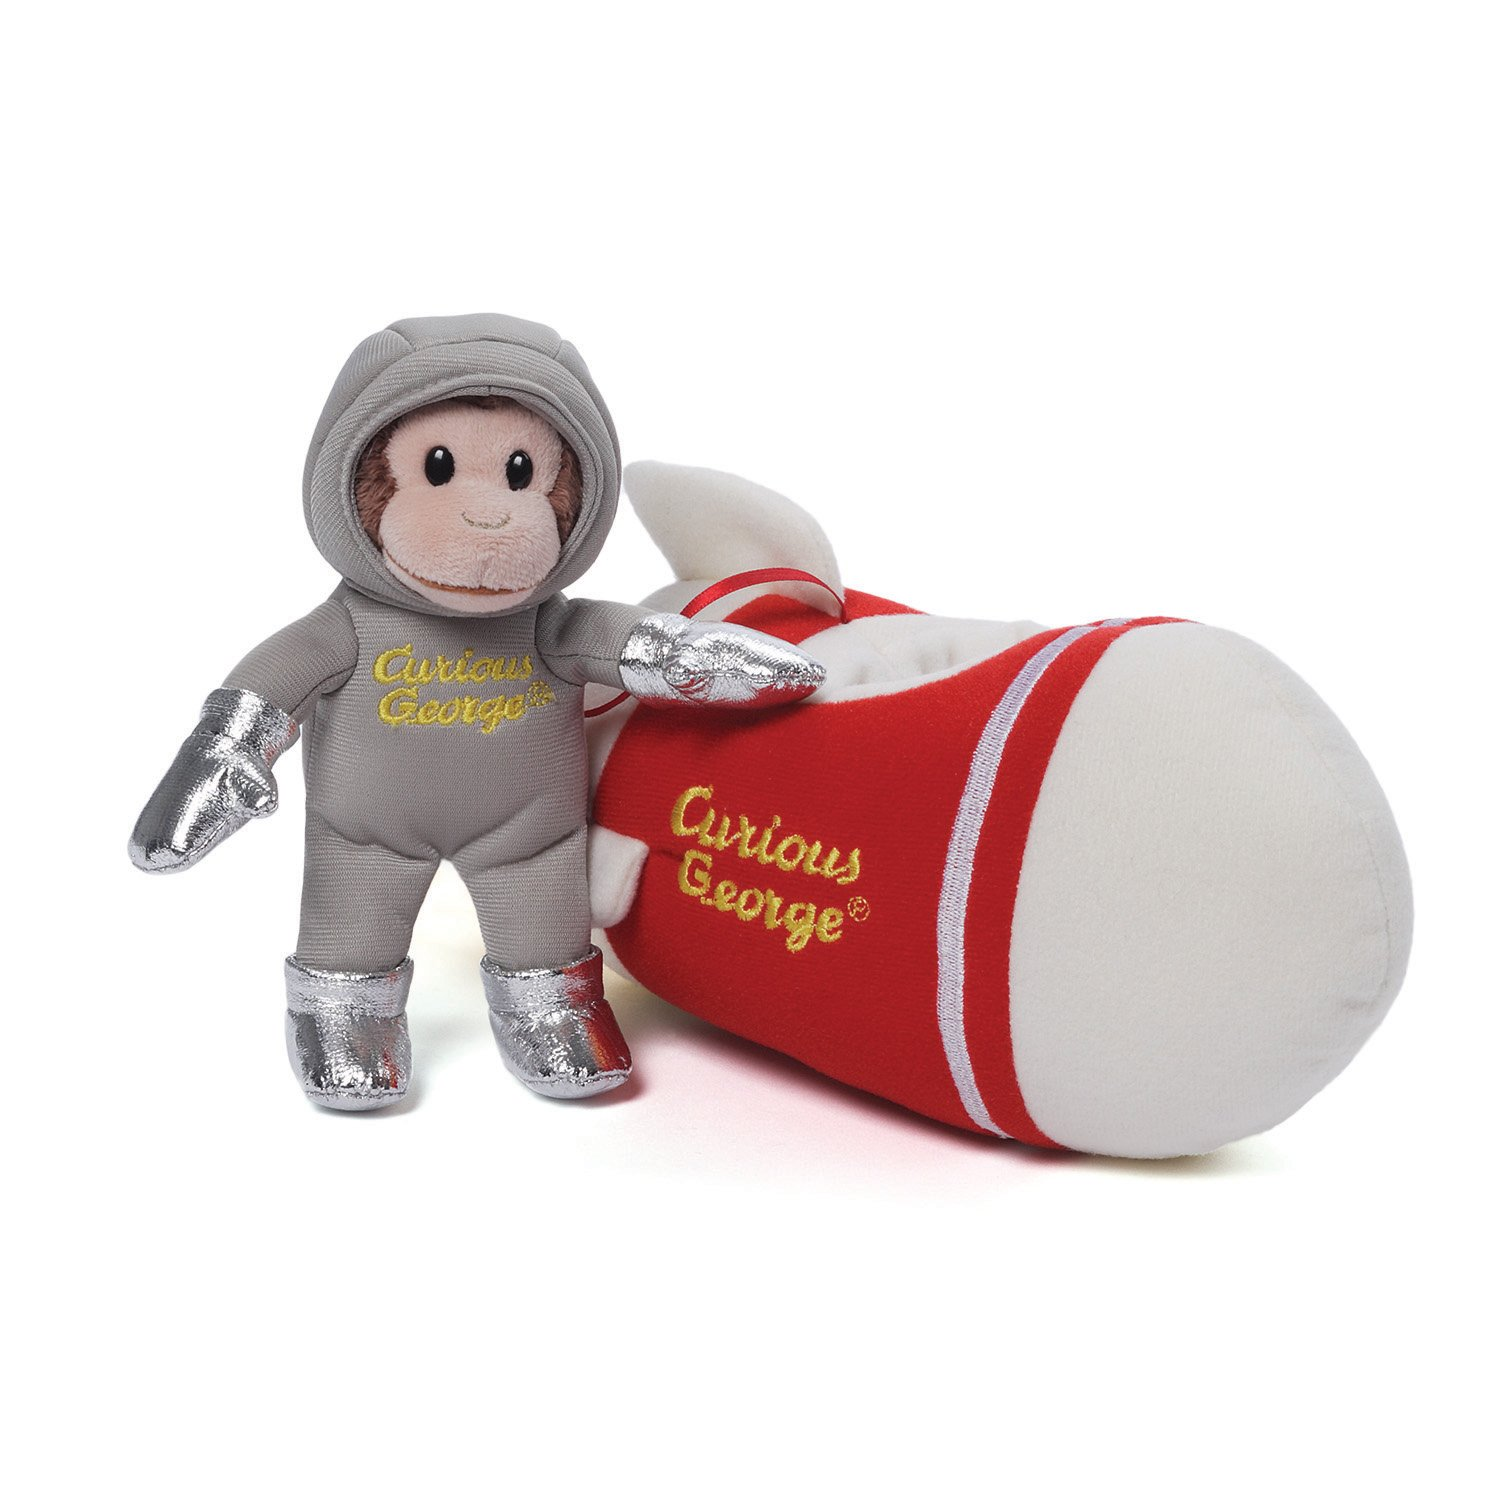 Amazoncom Curious George in Rocket Ship Sound Toy 8 Toy Toys